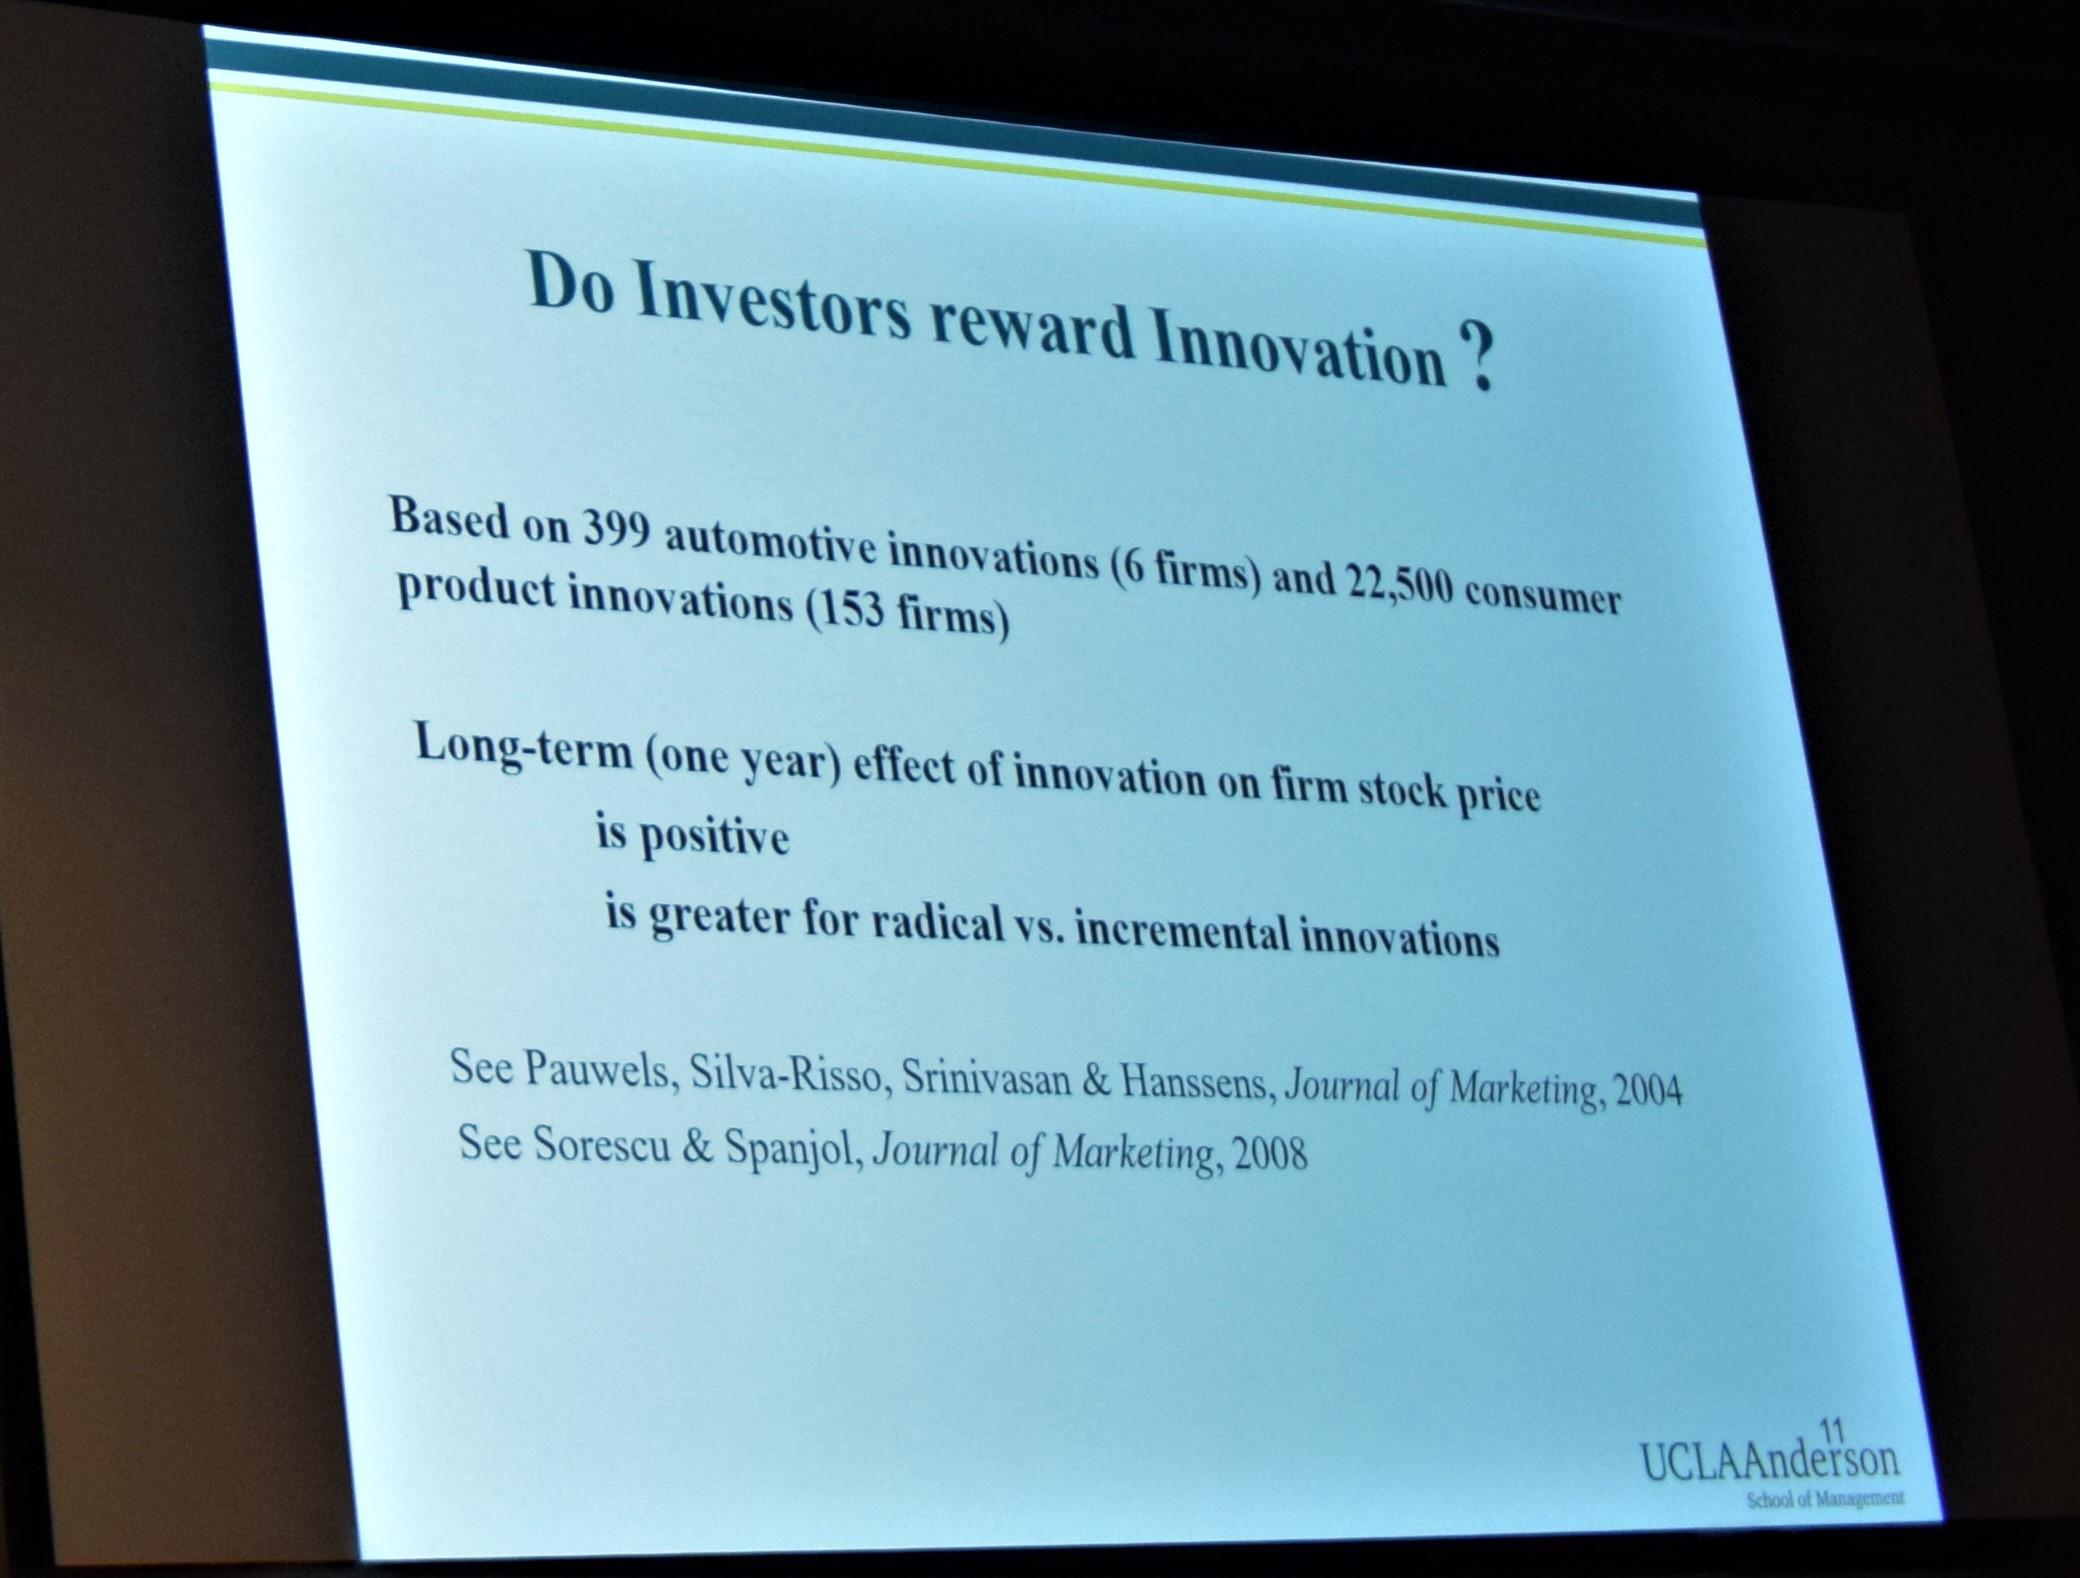 Investors reward innovation.jpg